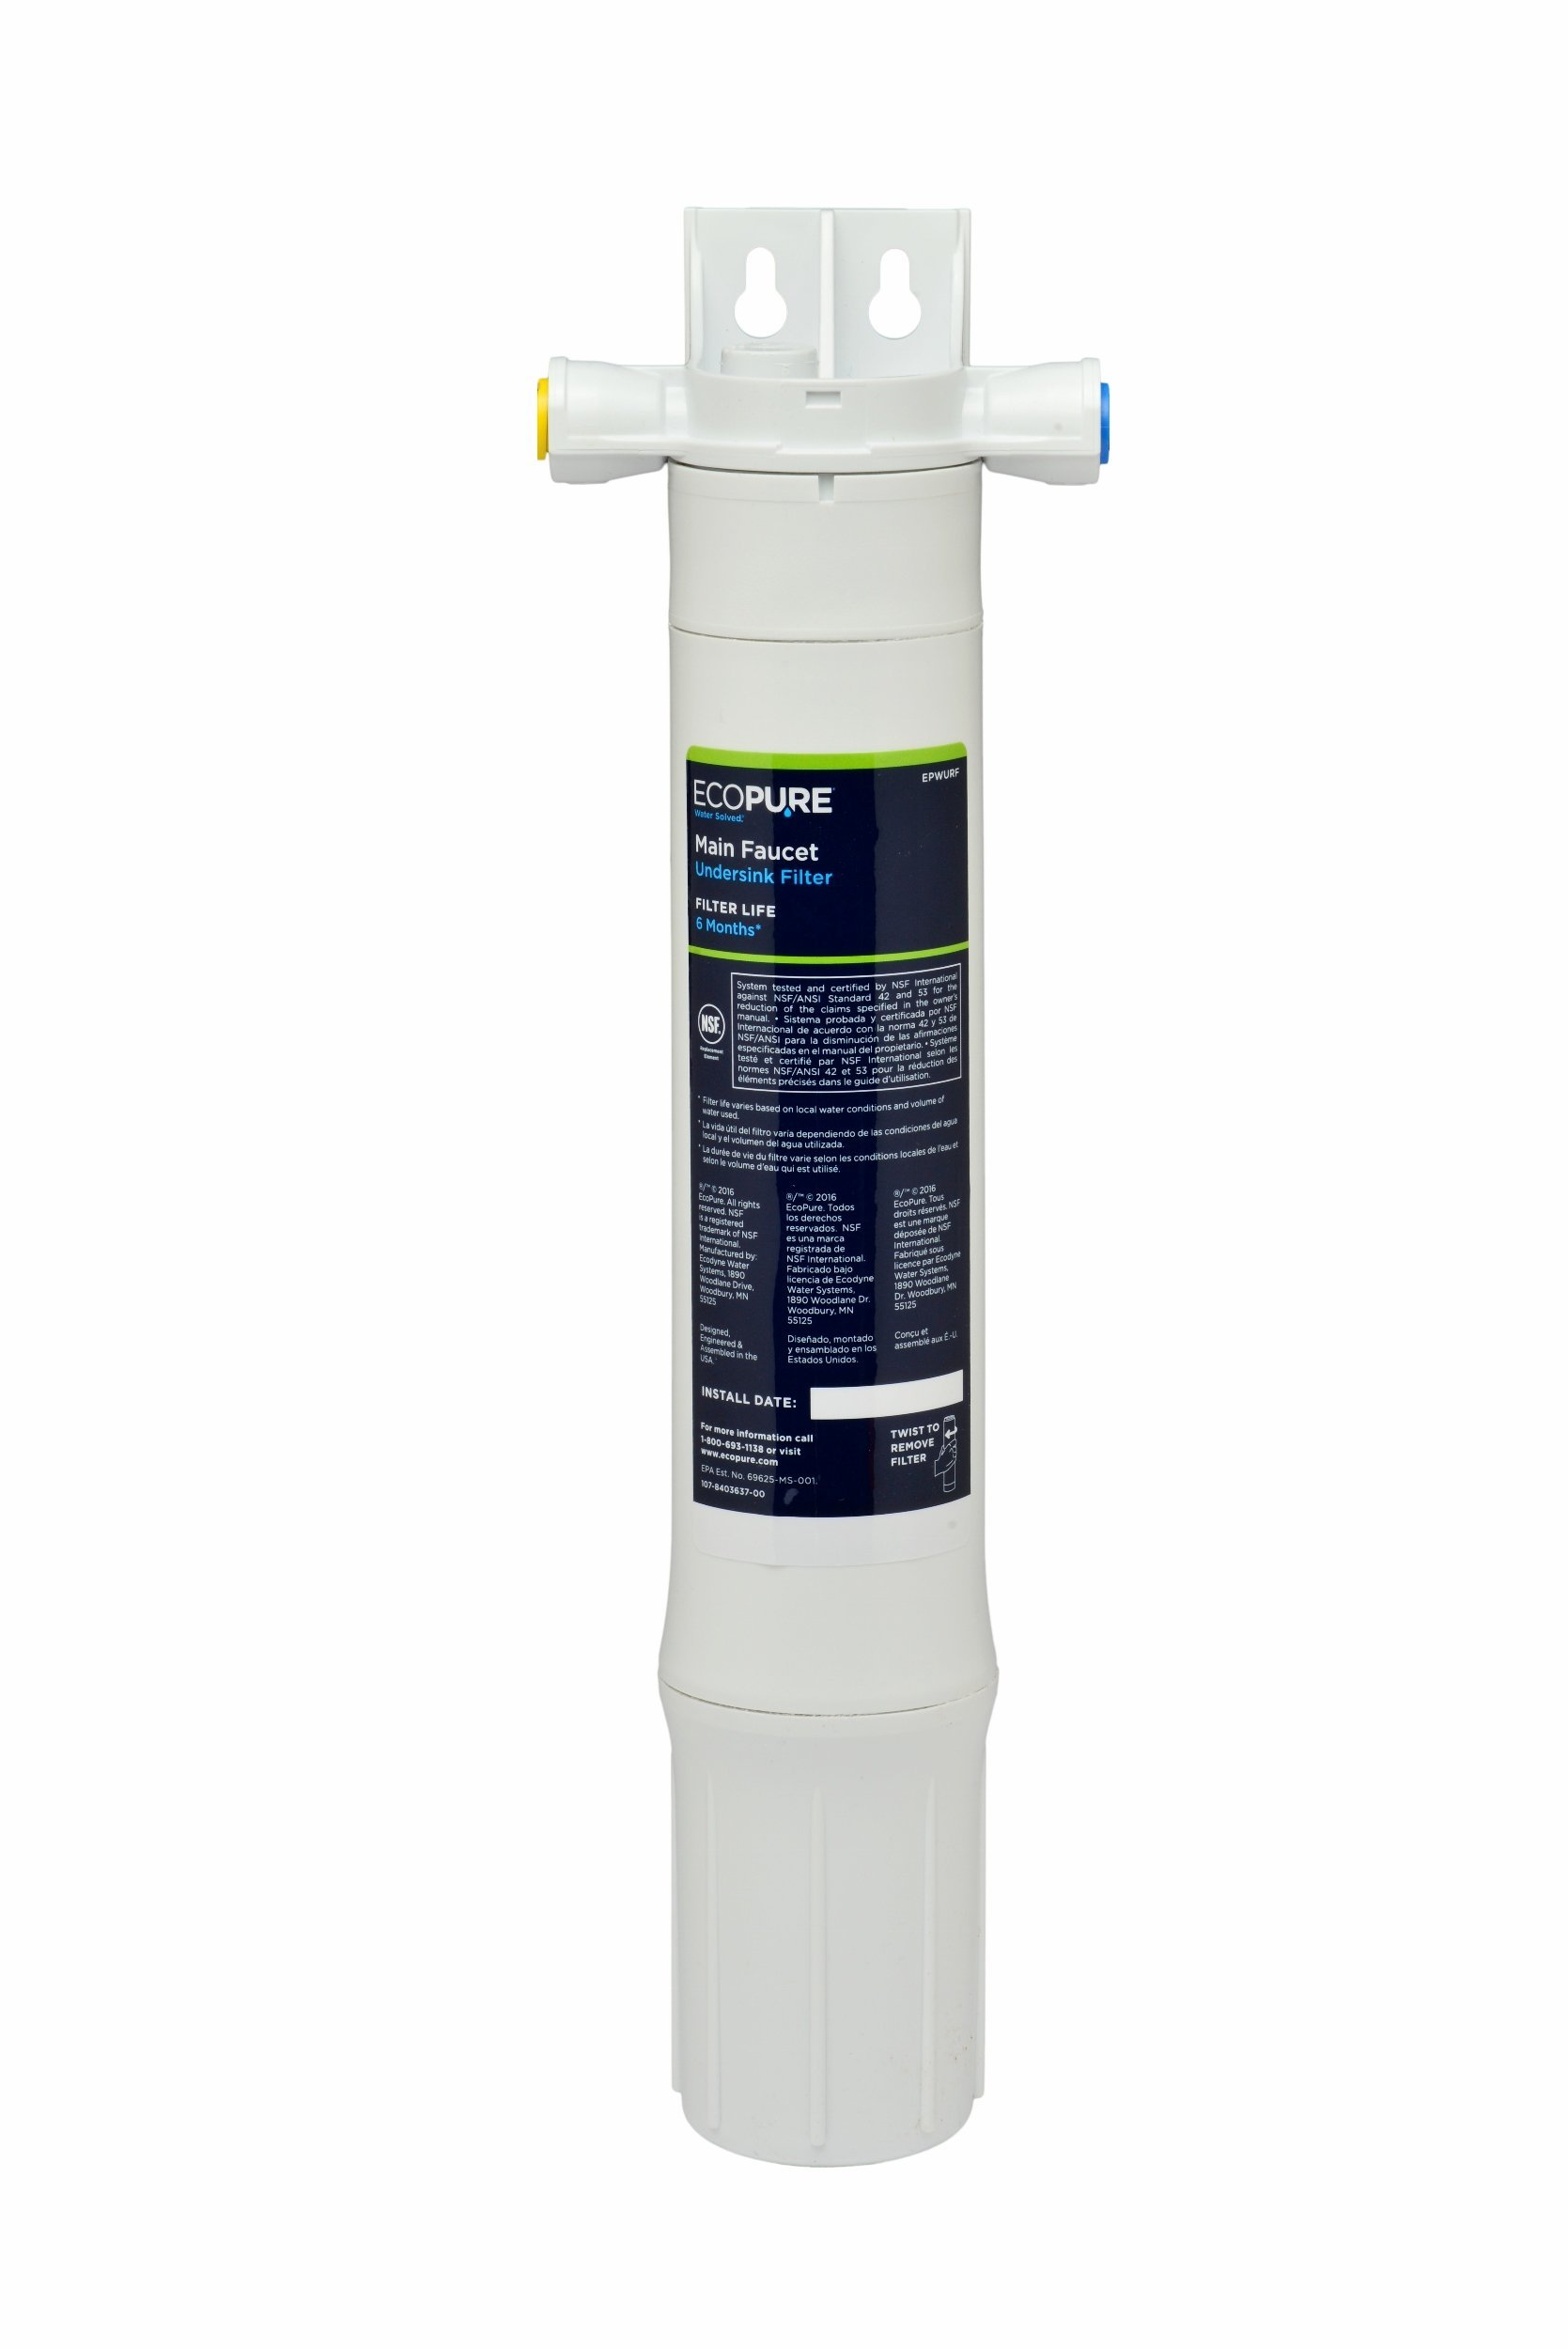 EcoPure Main Faucet Under Sink Water Filtration System (EPWUFF) | NSF Certified | No Additional Faucet Required | Cleaner Water from Your Existing Kitchen or Bath Faucet by EcoPure